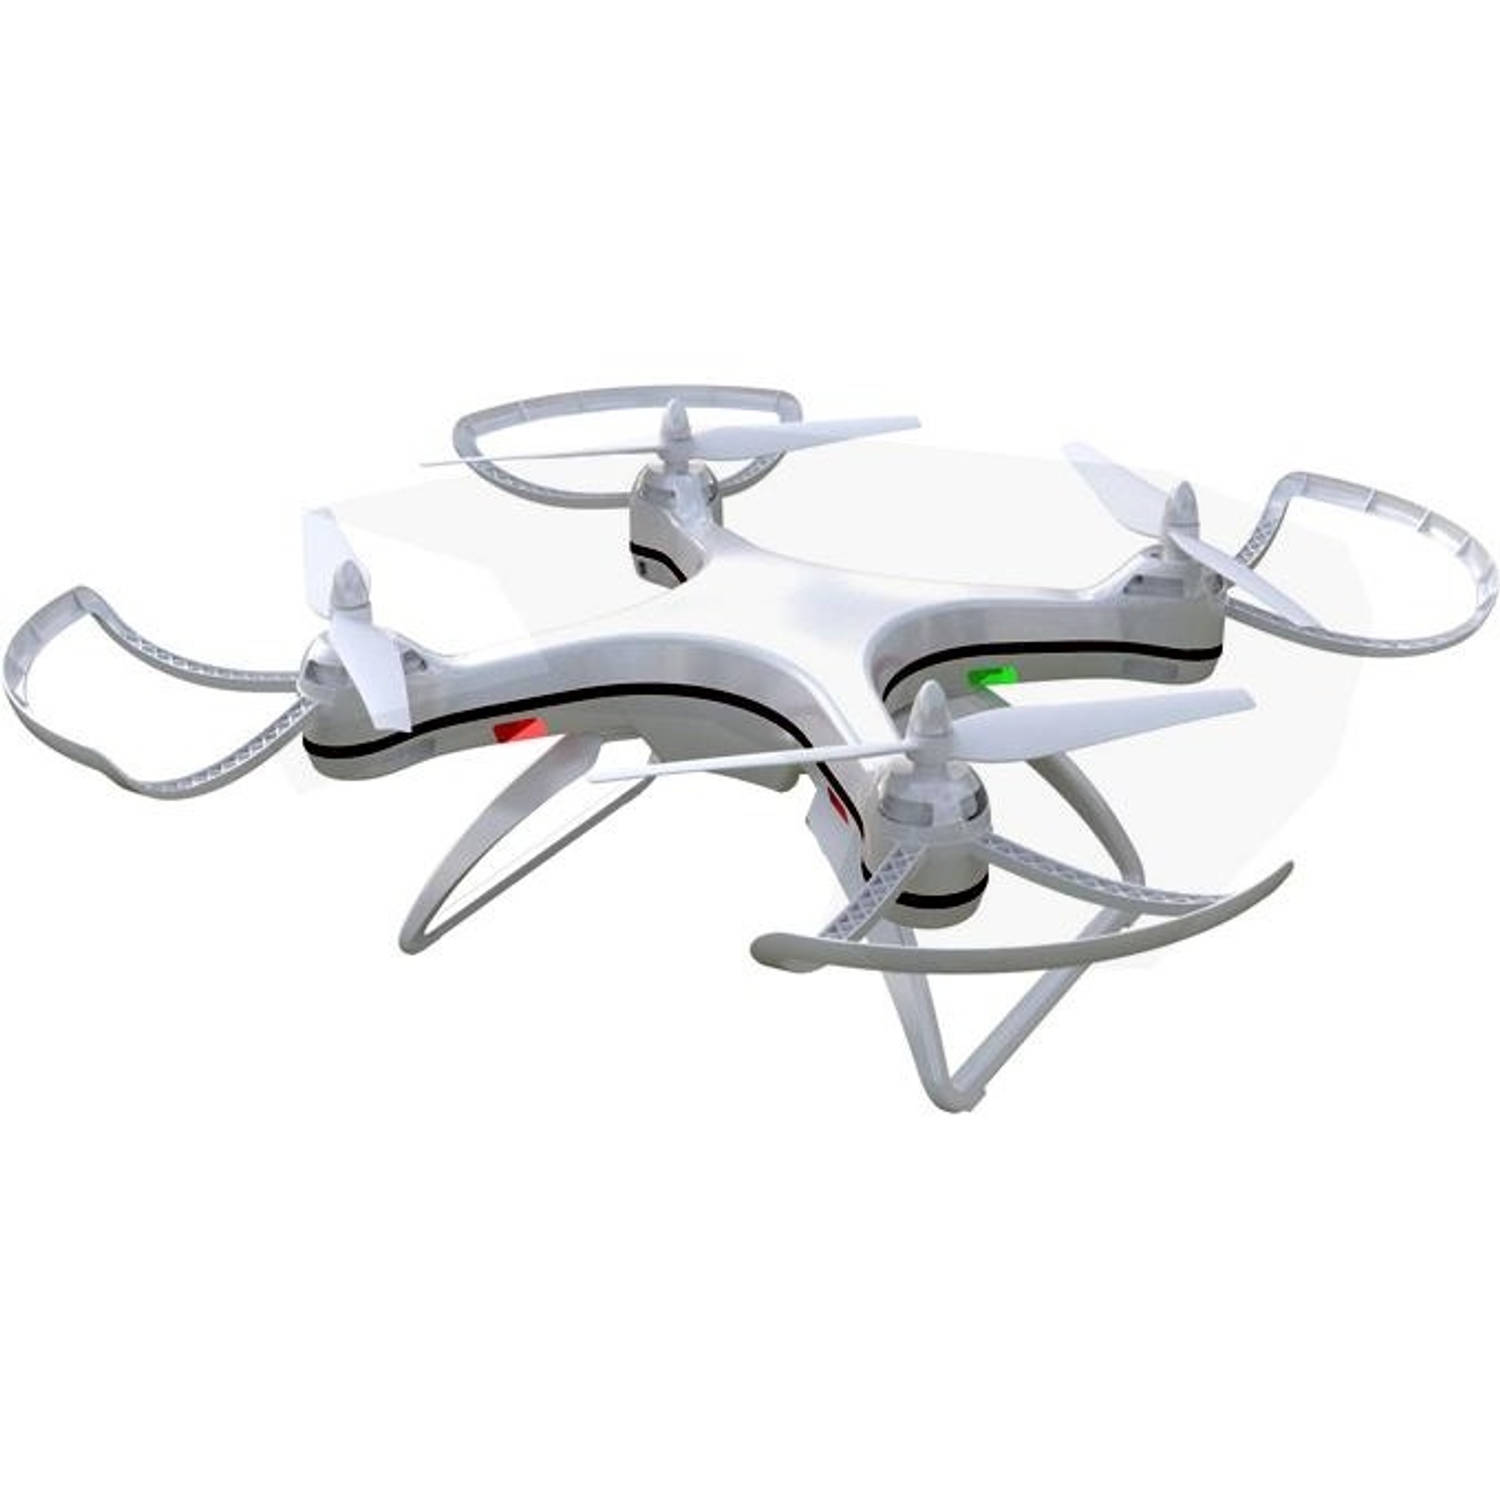 Ninco quadcopter Air Stratus Wifi GPS 62 cm wit